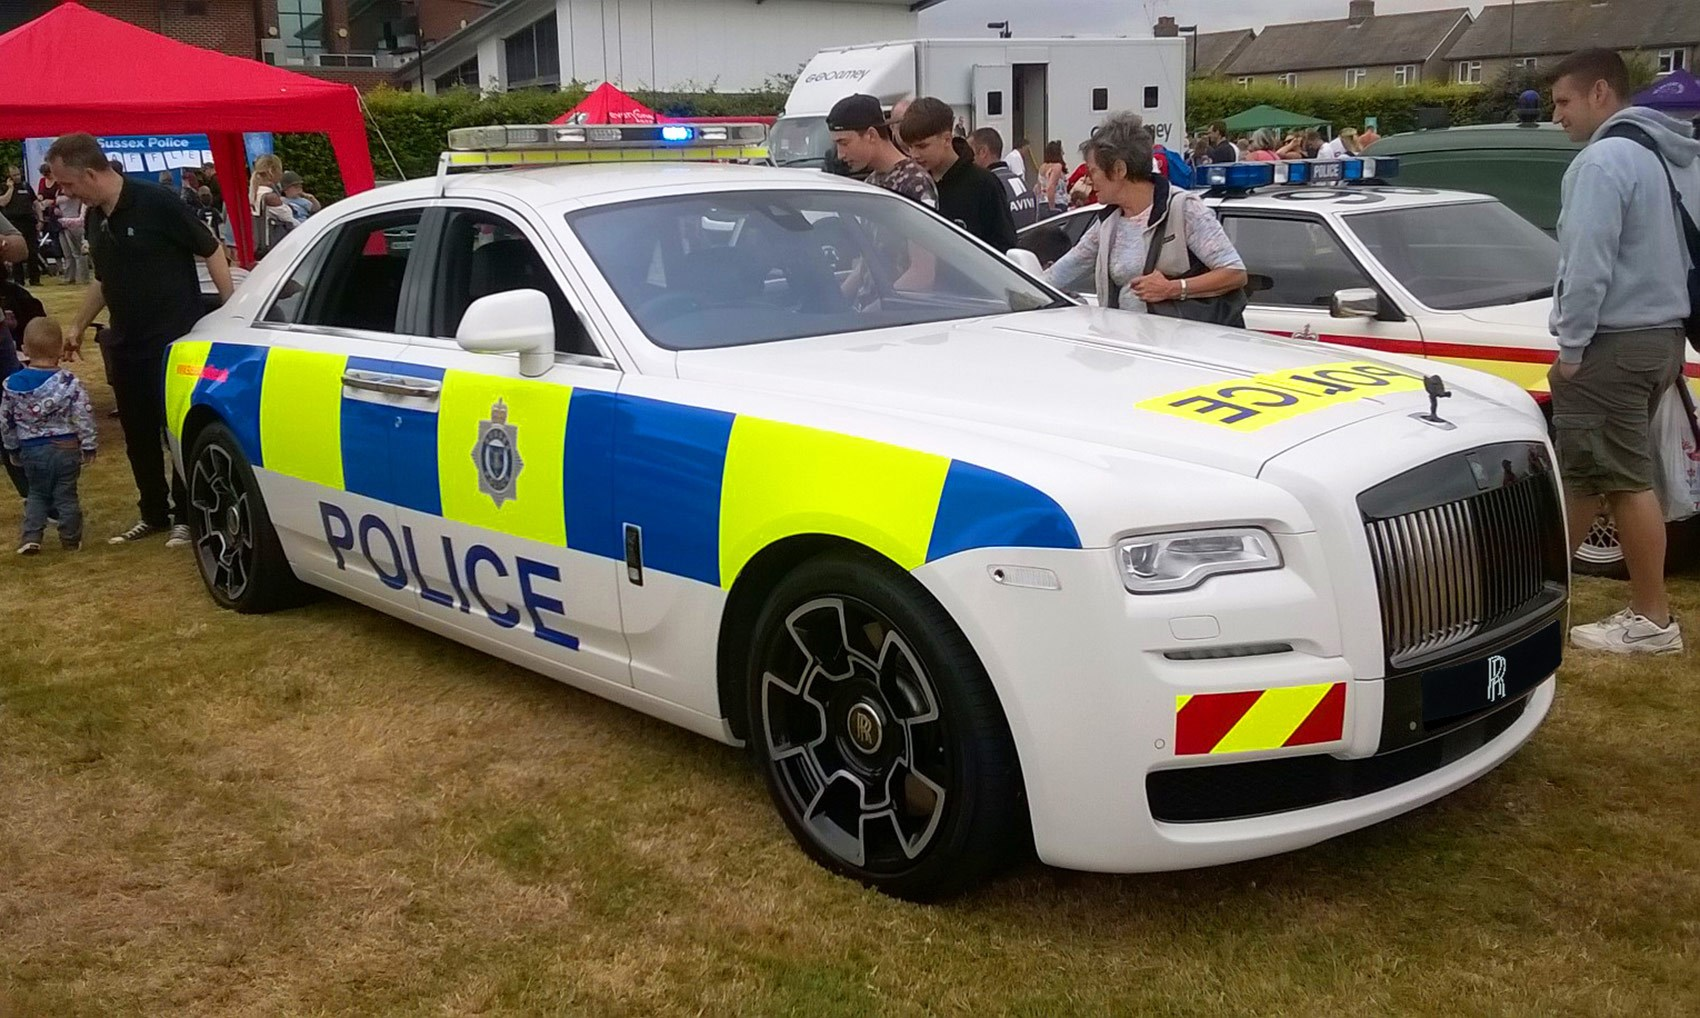 Rolls Royce Even Got In On The Act Wring A Limo Police Livery